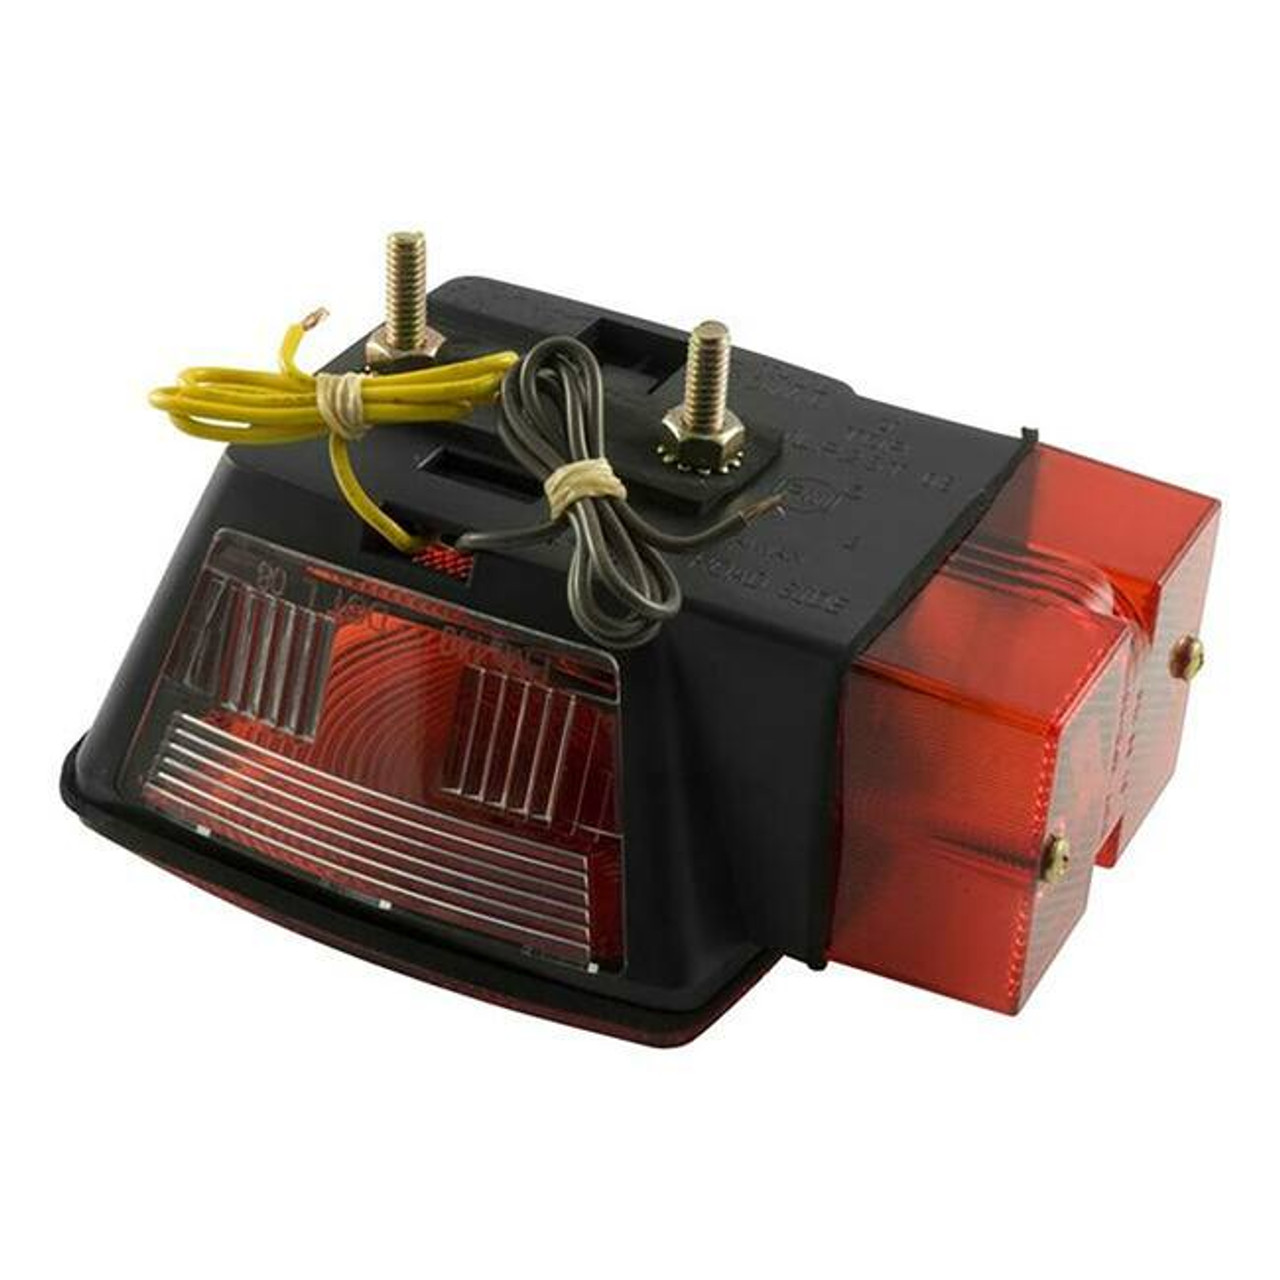 Submersible Combination Light- Red- Left Side- w/License Plate Illuminator